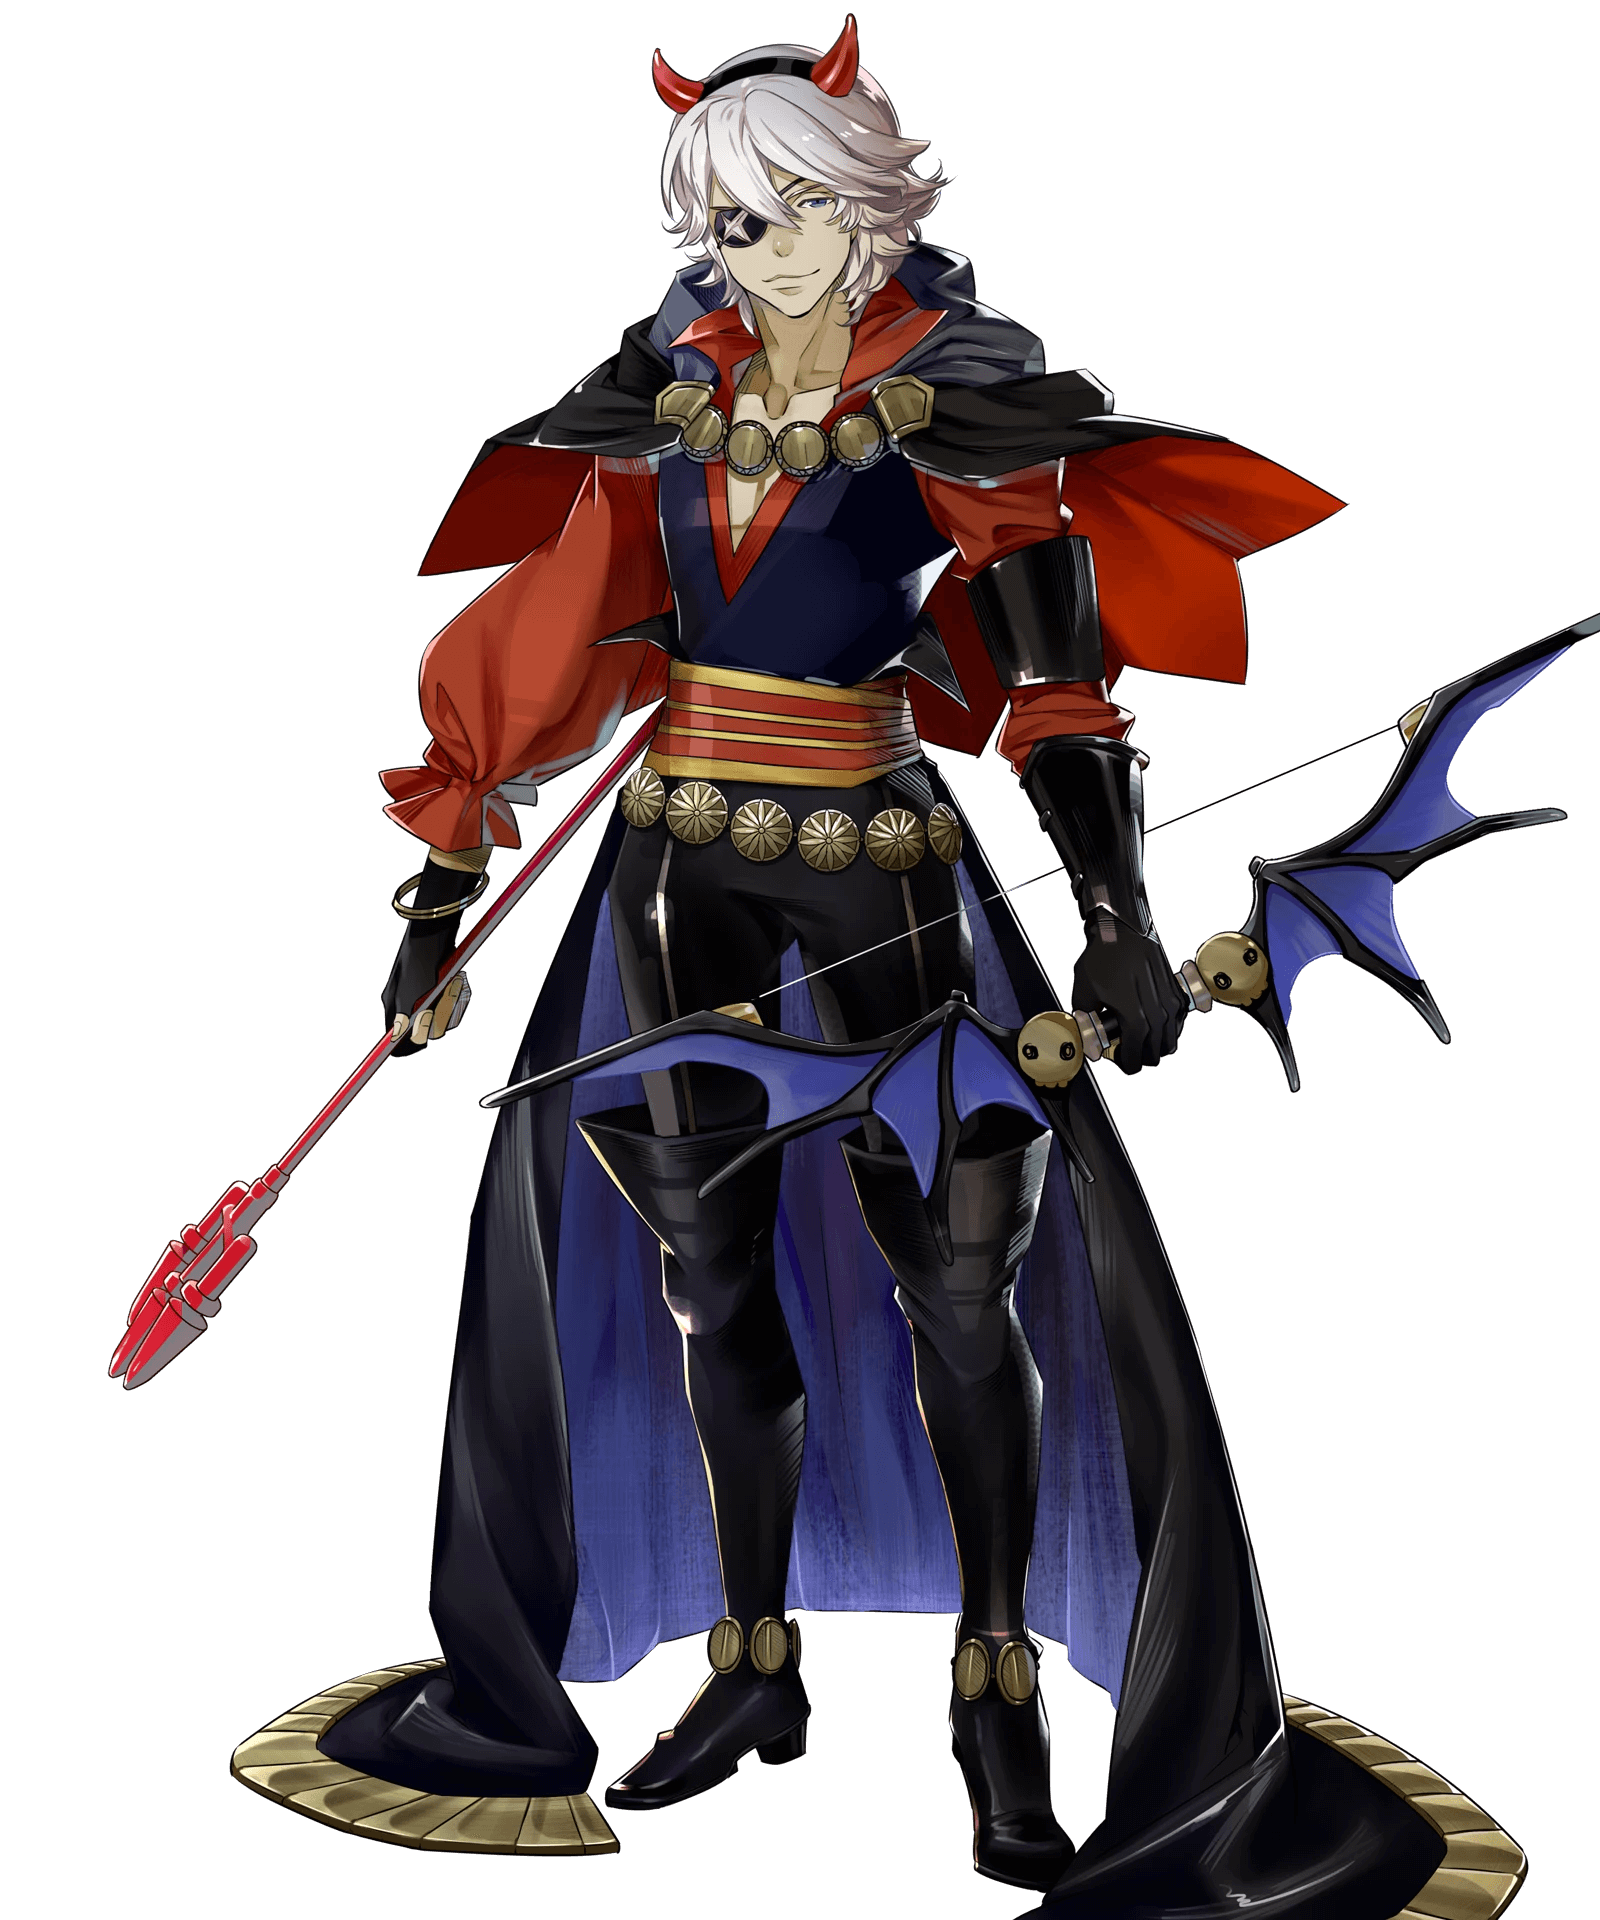 Fighter drawing action hero. Halloween niles fire emblem